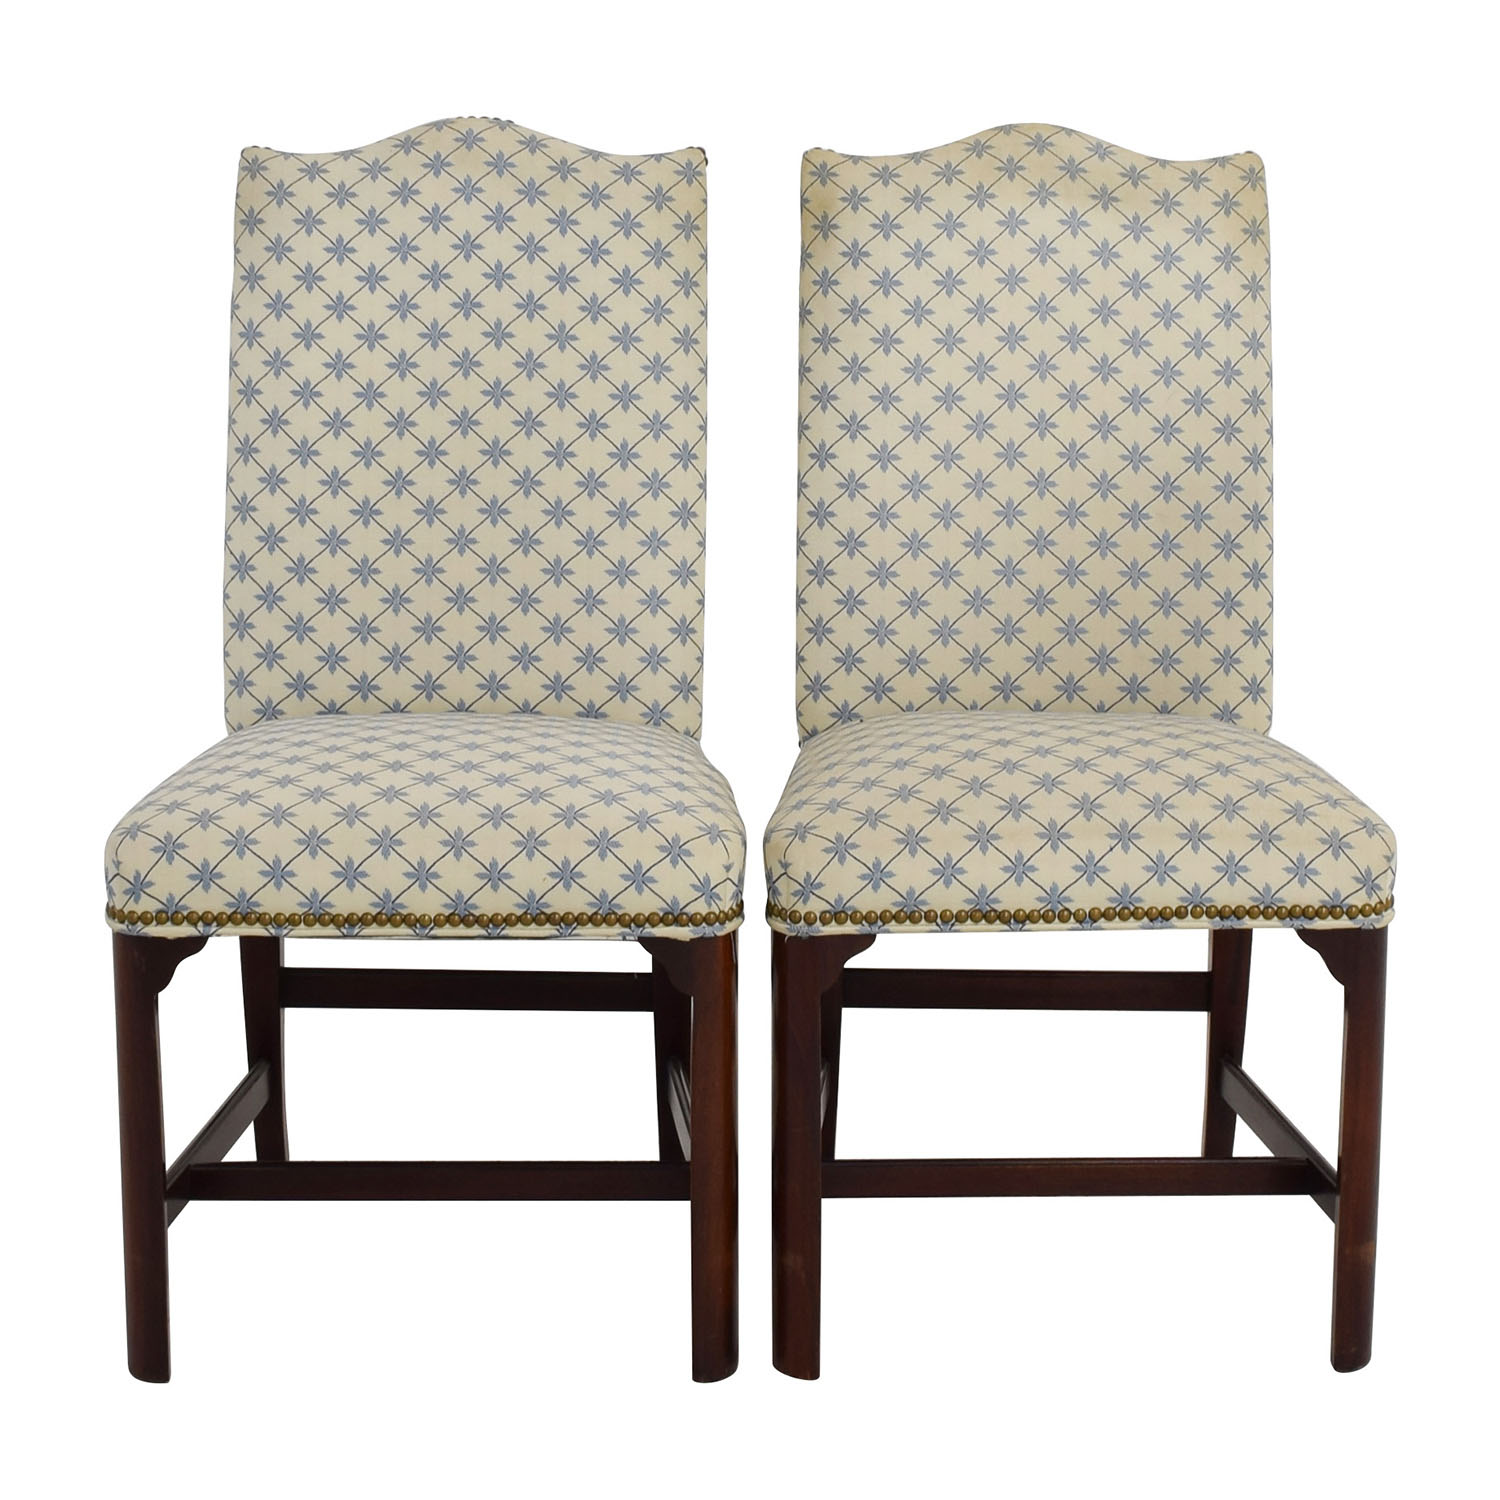 shop Hickory Chair Bespoke Upholstered Occasional Chairs Hickory Chair Chairs ...  sc 1 st  Furnishare & 88% OFF - Hickory Chair Hickory Chair Bespoke Upholstered Occasional ...